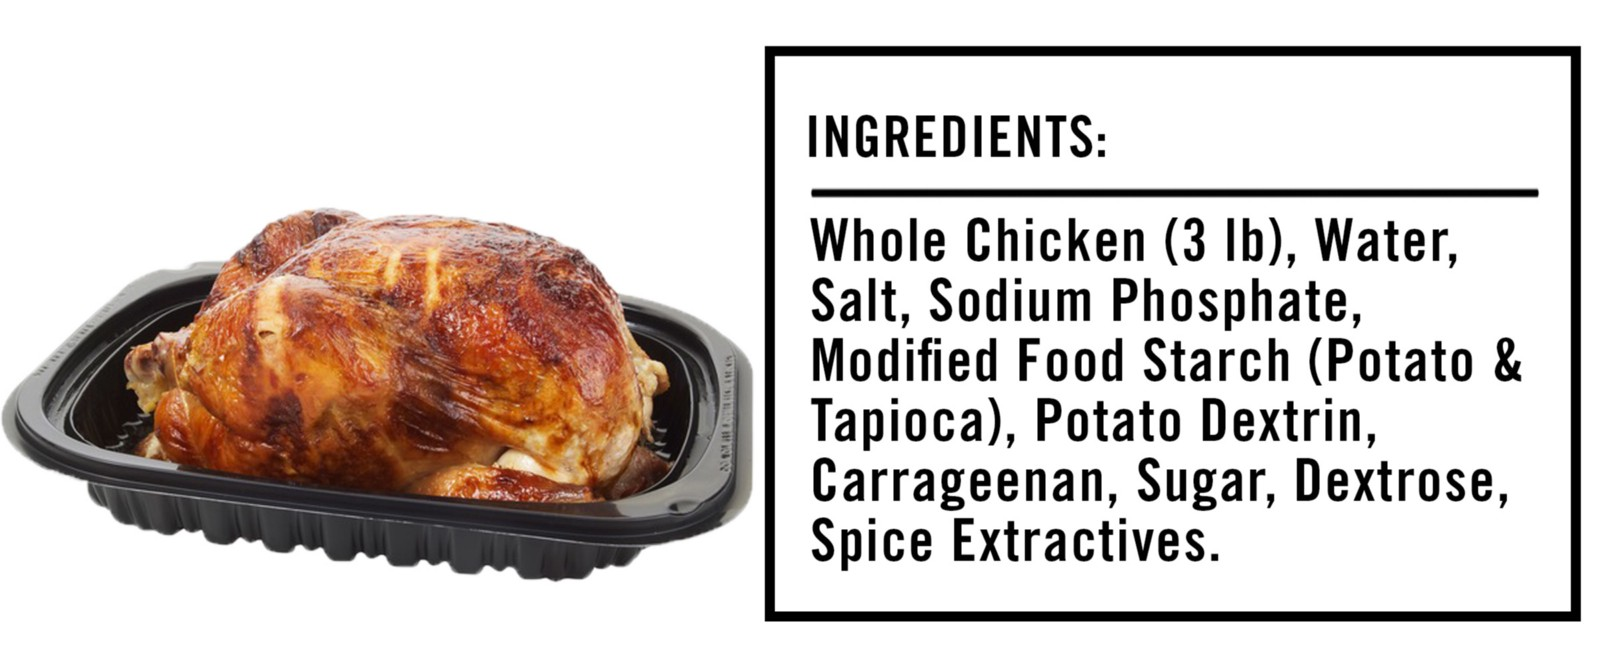 The ingredients listed on the label of a Costco rotisserie chicken are: whole chicken, water and seasonings (salt, sodium phosphate, modified food starch, potato dextrin, carrageenan, sugar, dextrose, spice extractives). Compared to the odd ingredients found in many processed foods, that's not so bad.